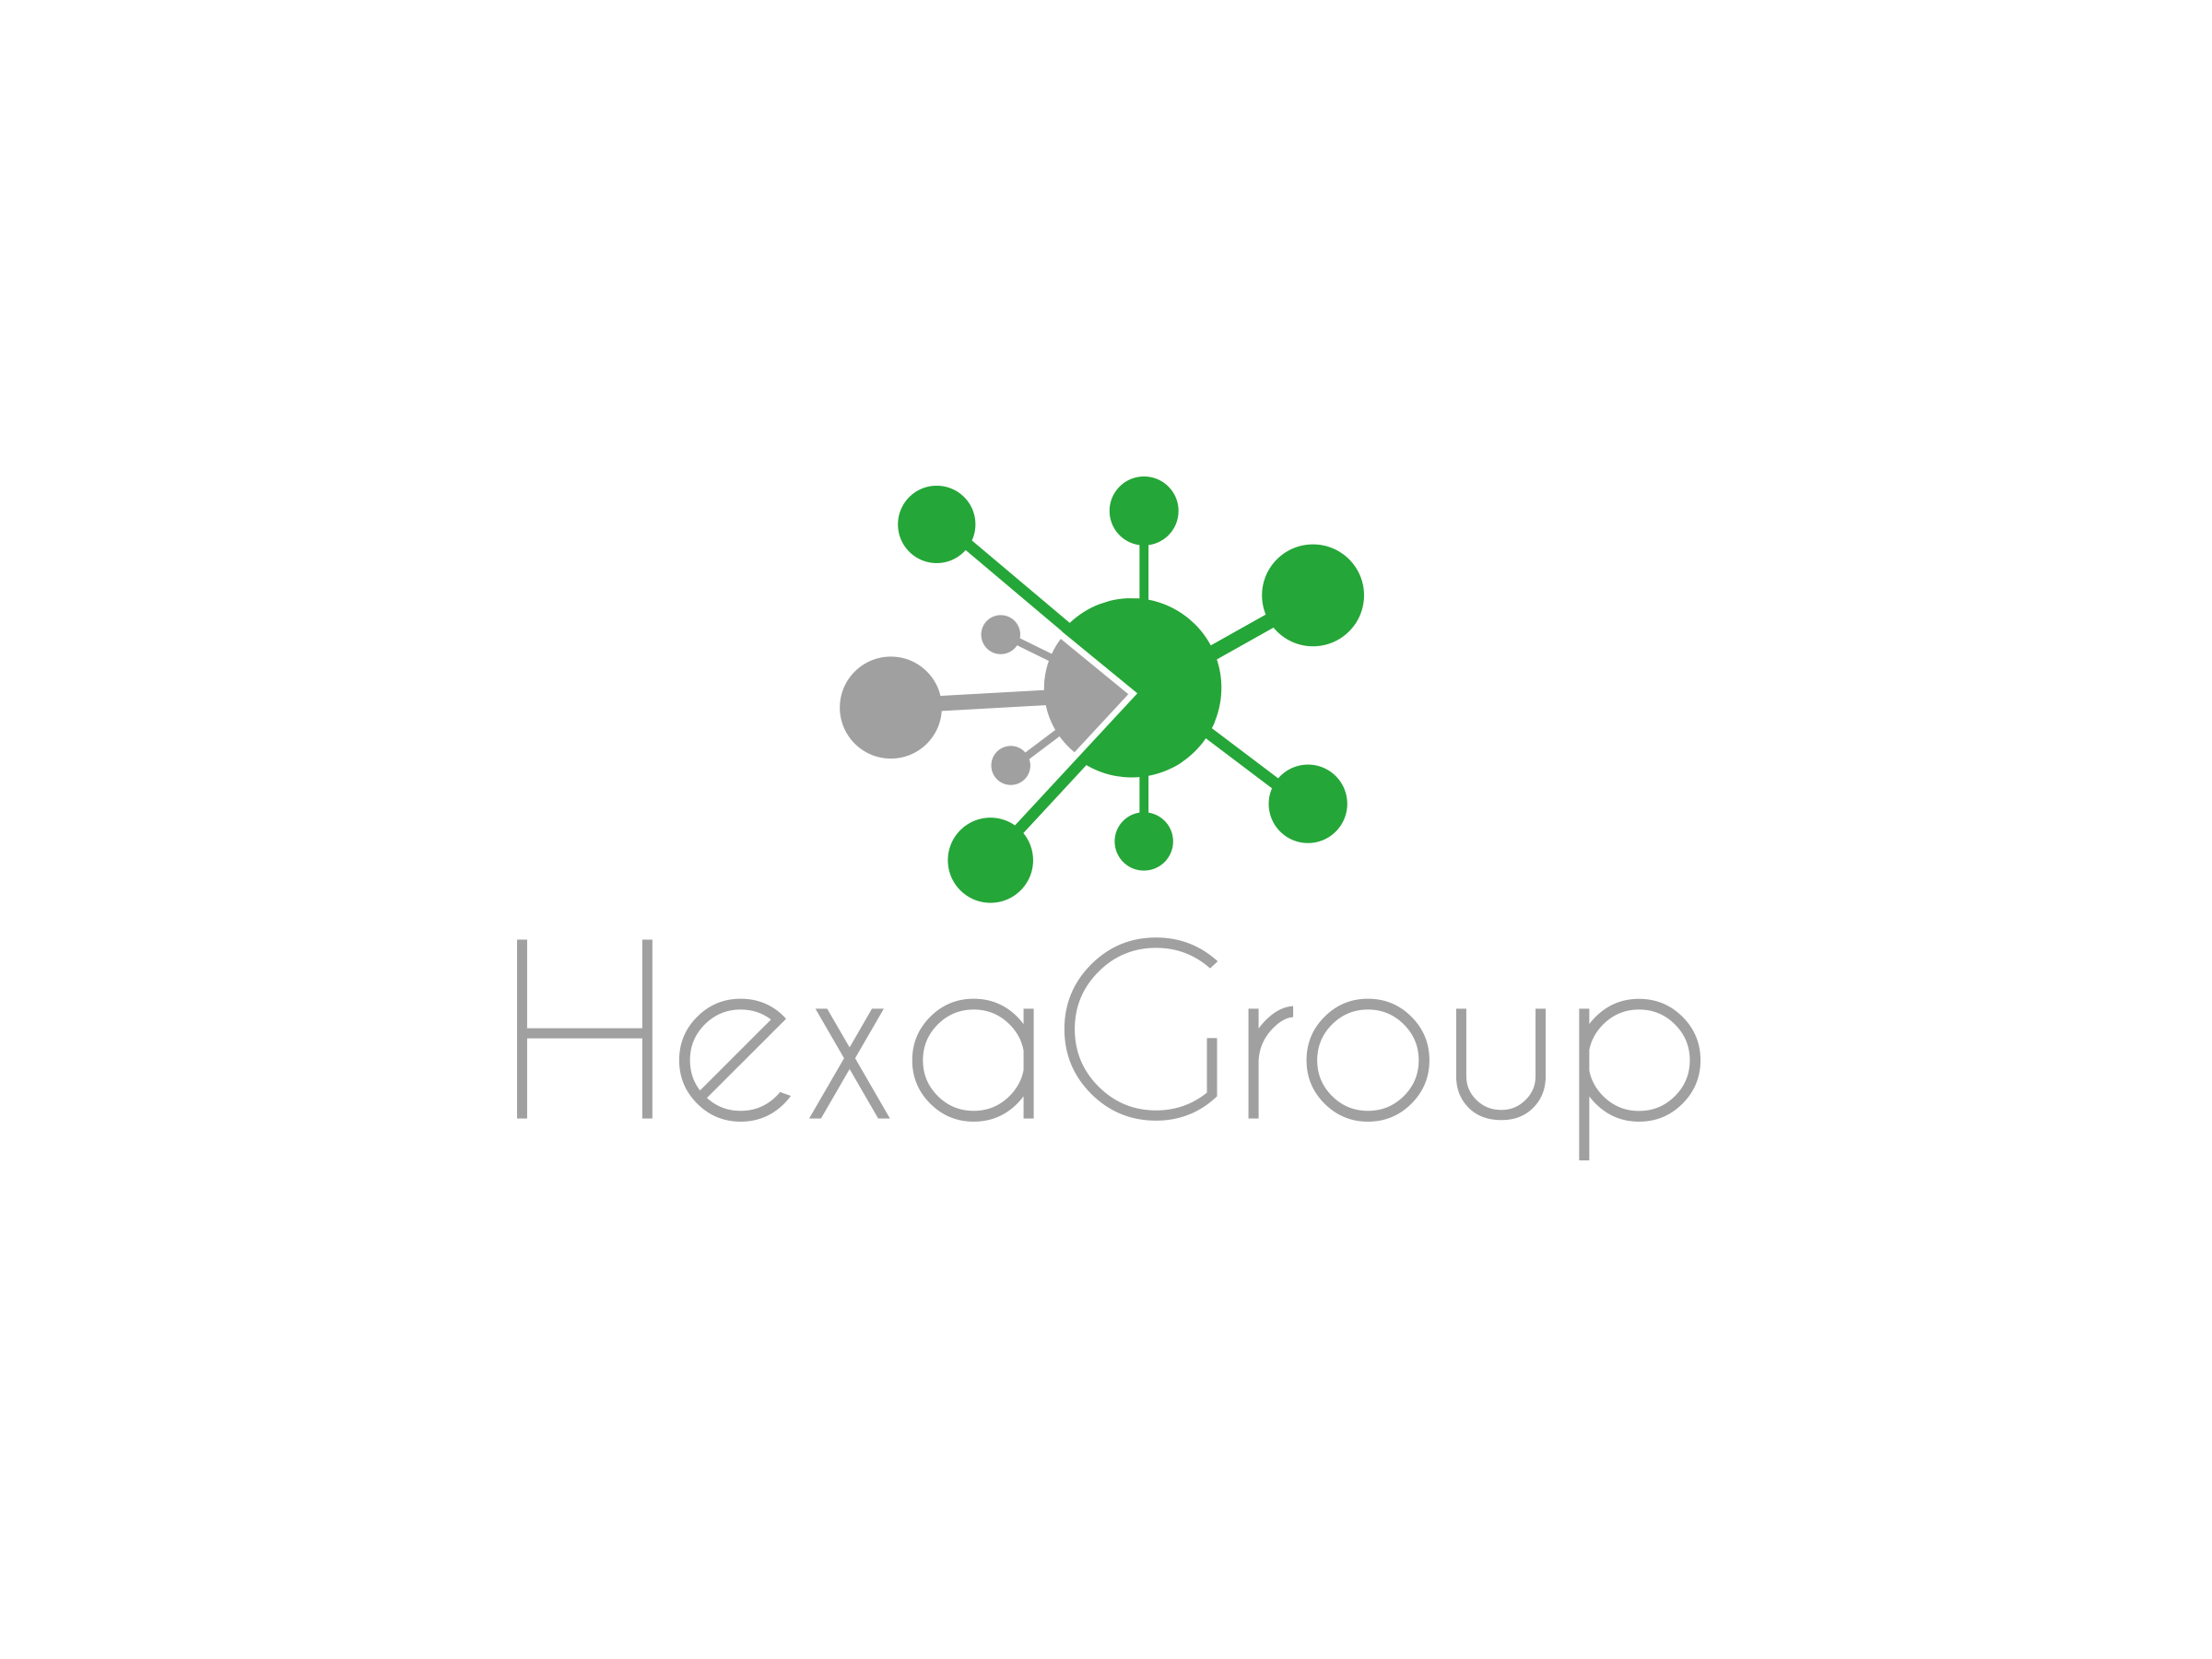 logo-hexagroup